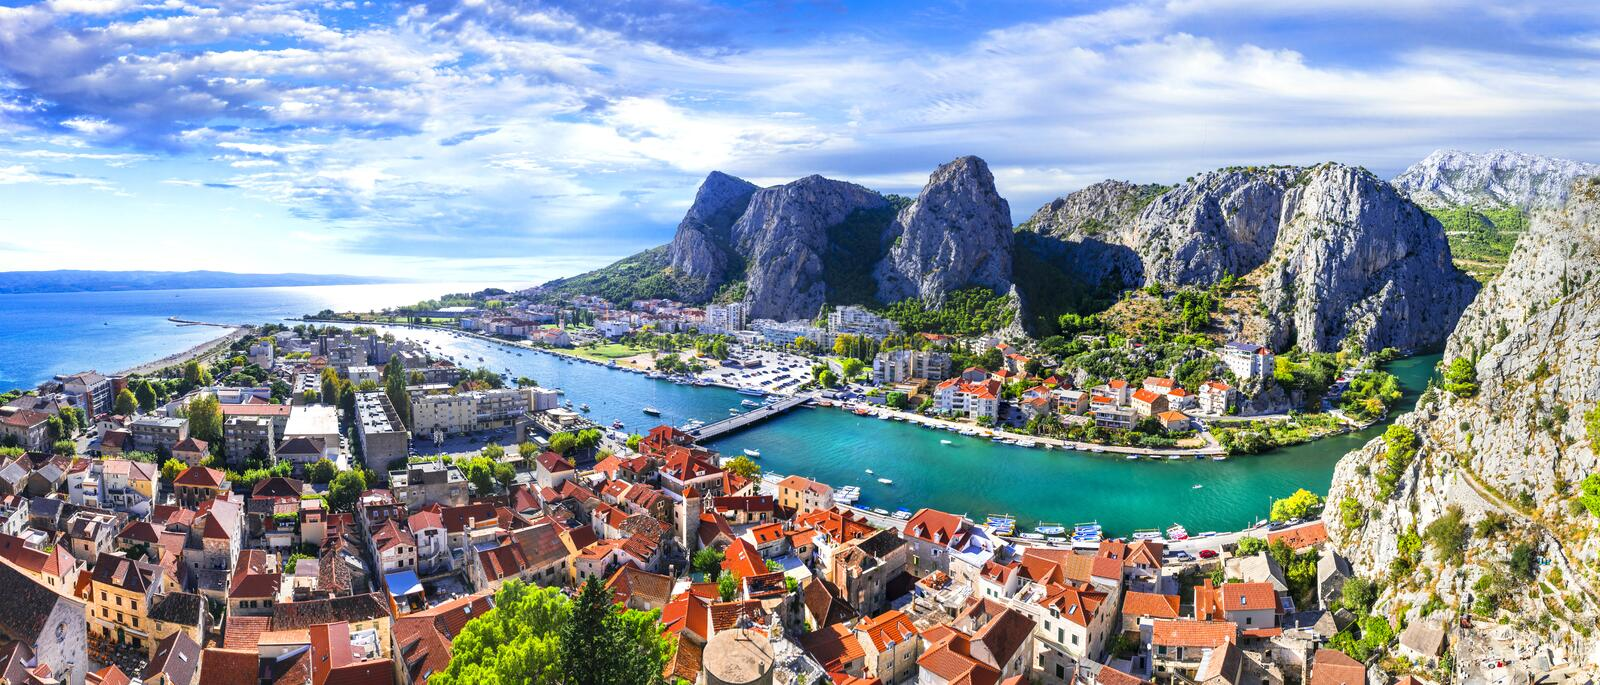 Travel in Croatia - Omis town surrounded by mountains royalty free stock photography